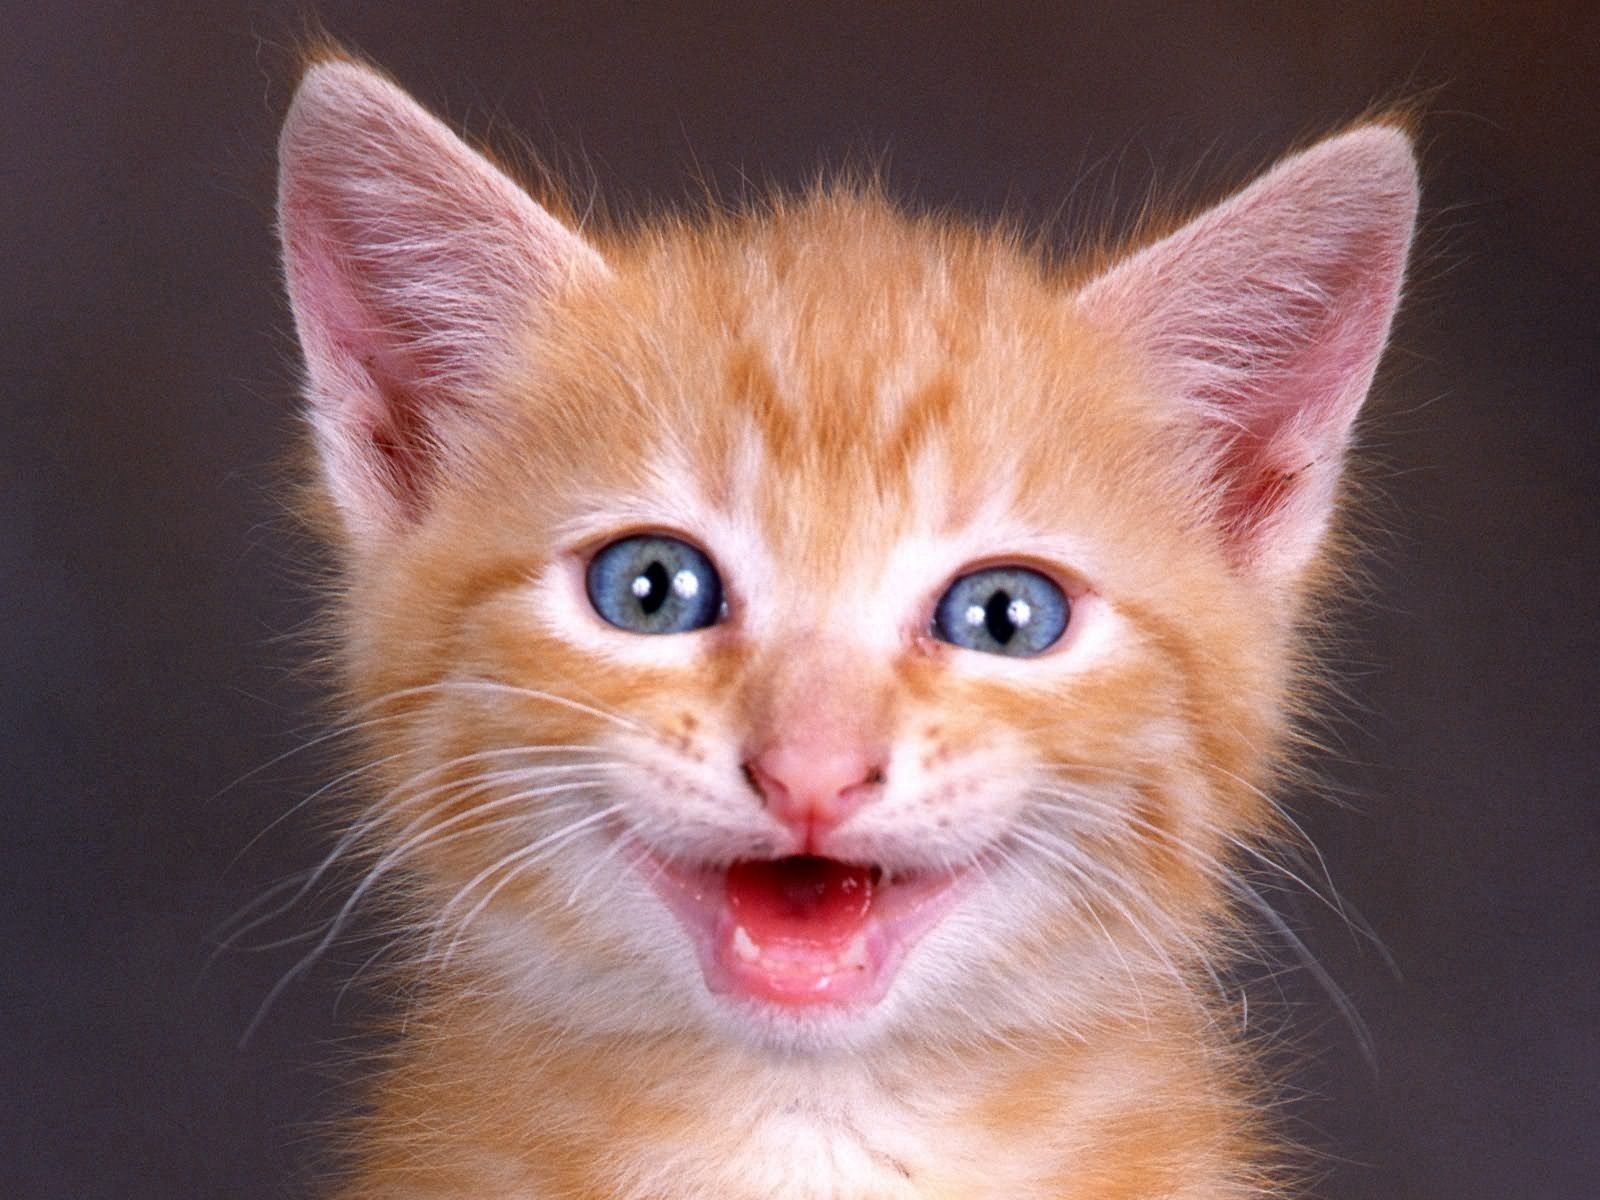 55041 download wallpaper Animals, Kitty, Kitten, Muzzle, Scream, Cry, Redhead screensavers and pictures for free